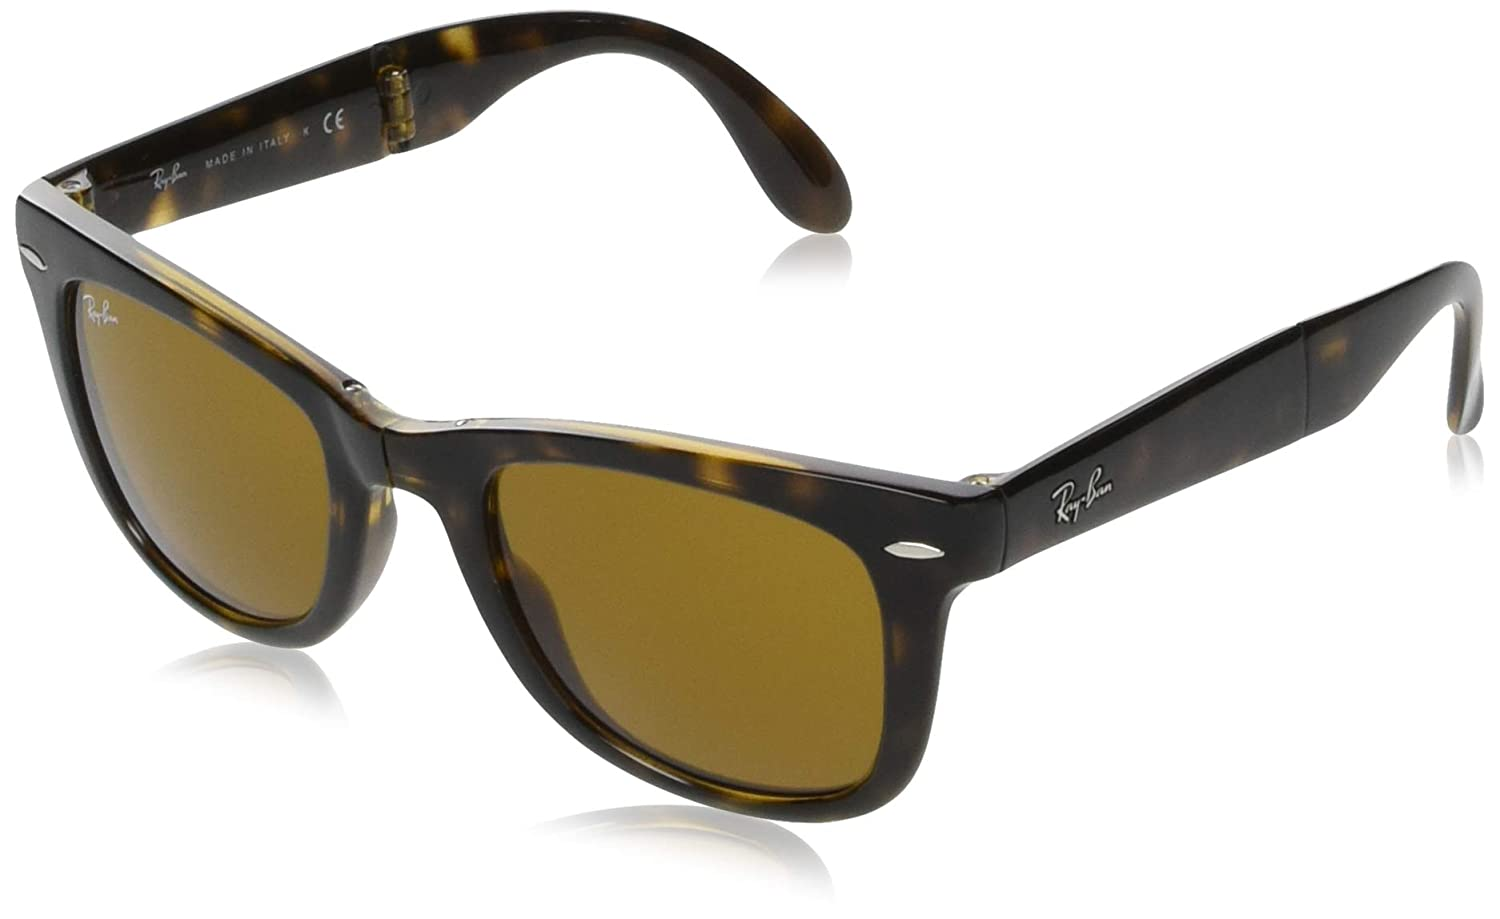 Ray-Ban RB4105 Folding Wayfarer - Gafas de sol, 54 mm